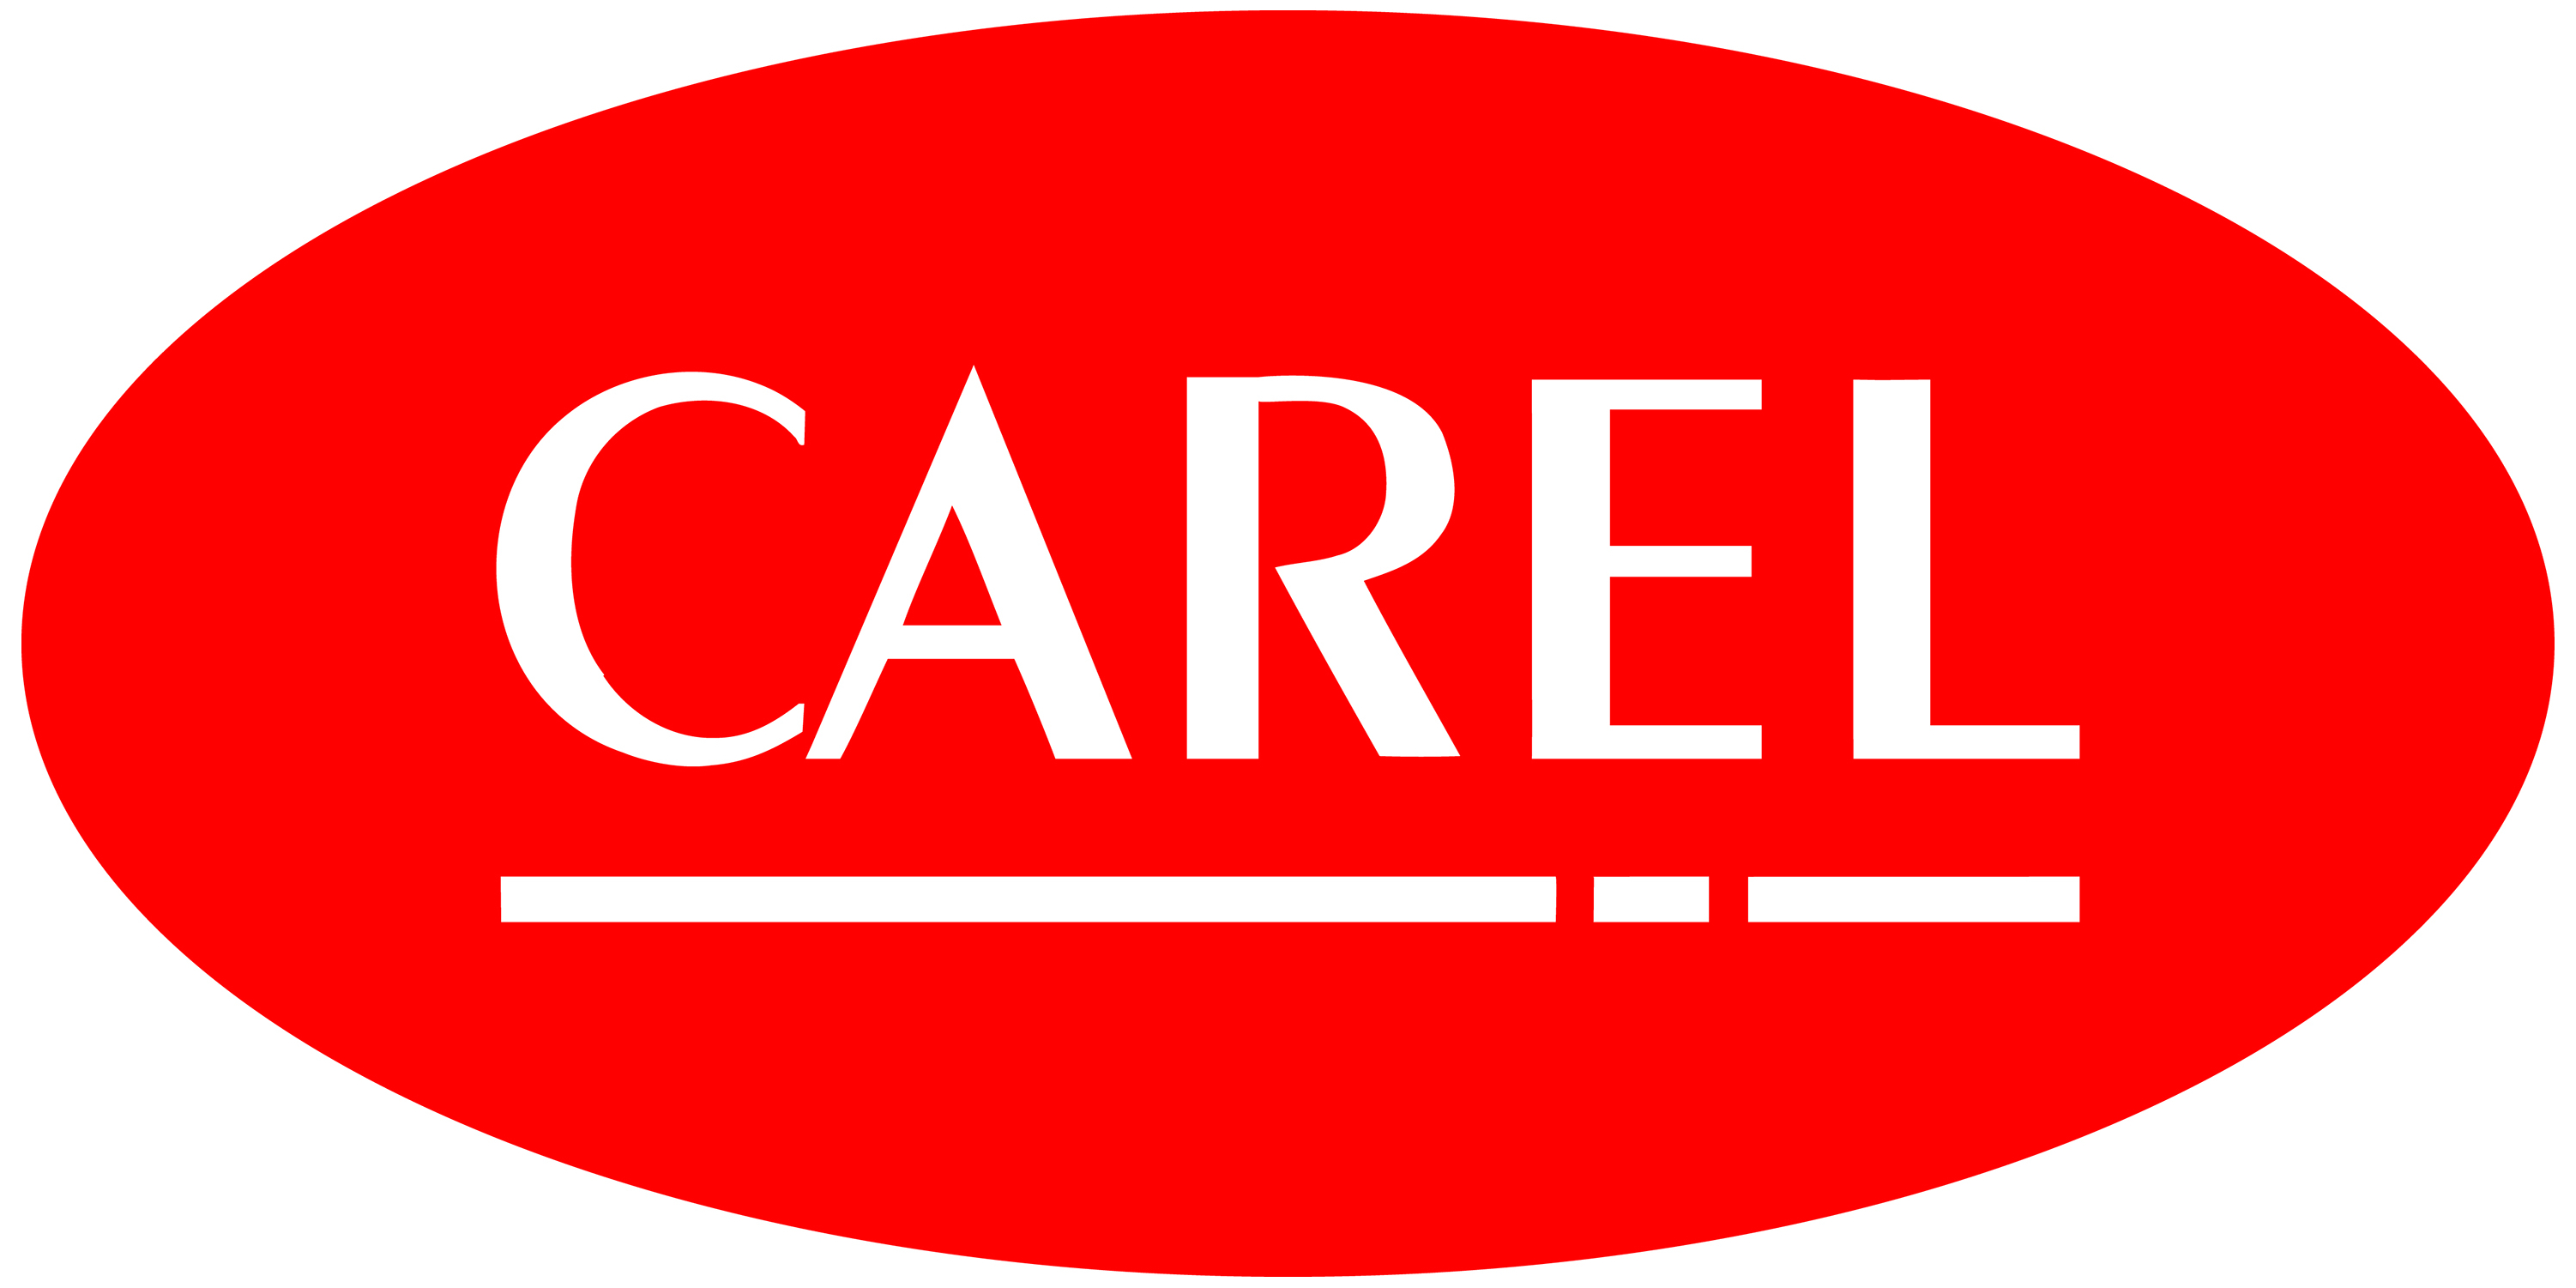 CAREL - Certifications